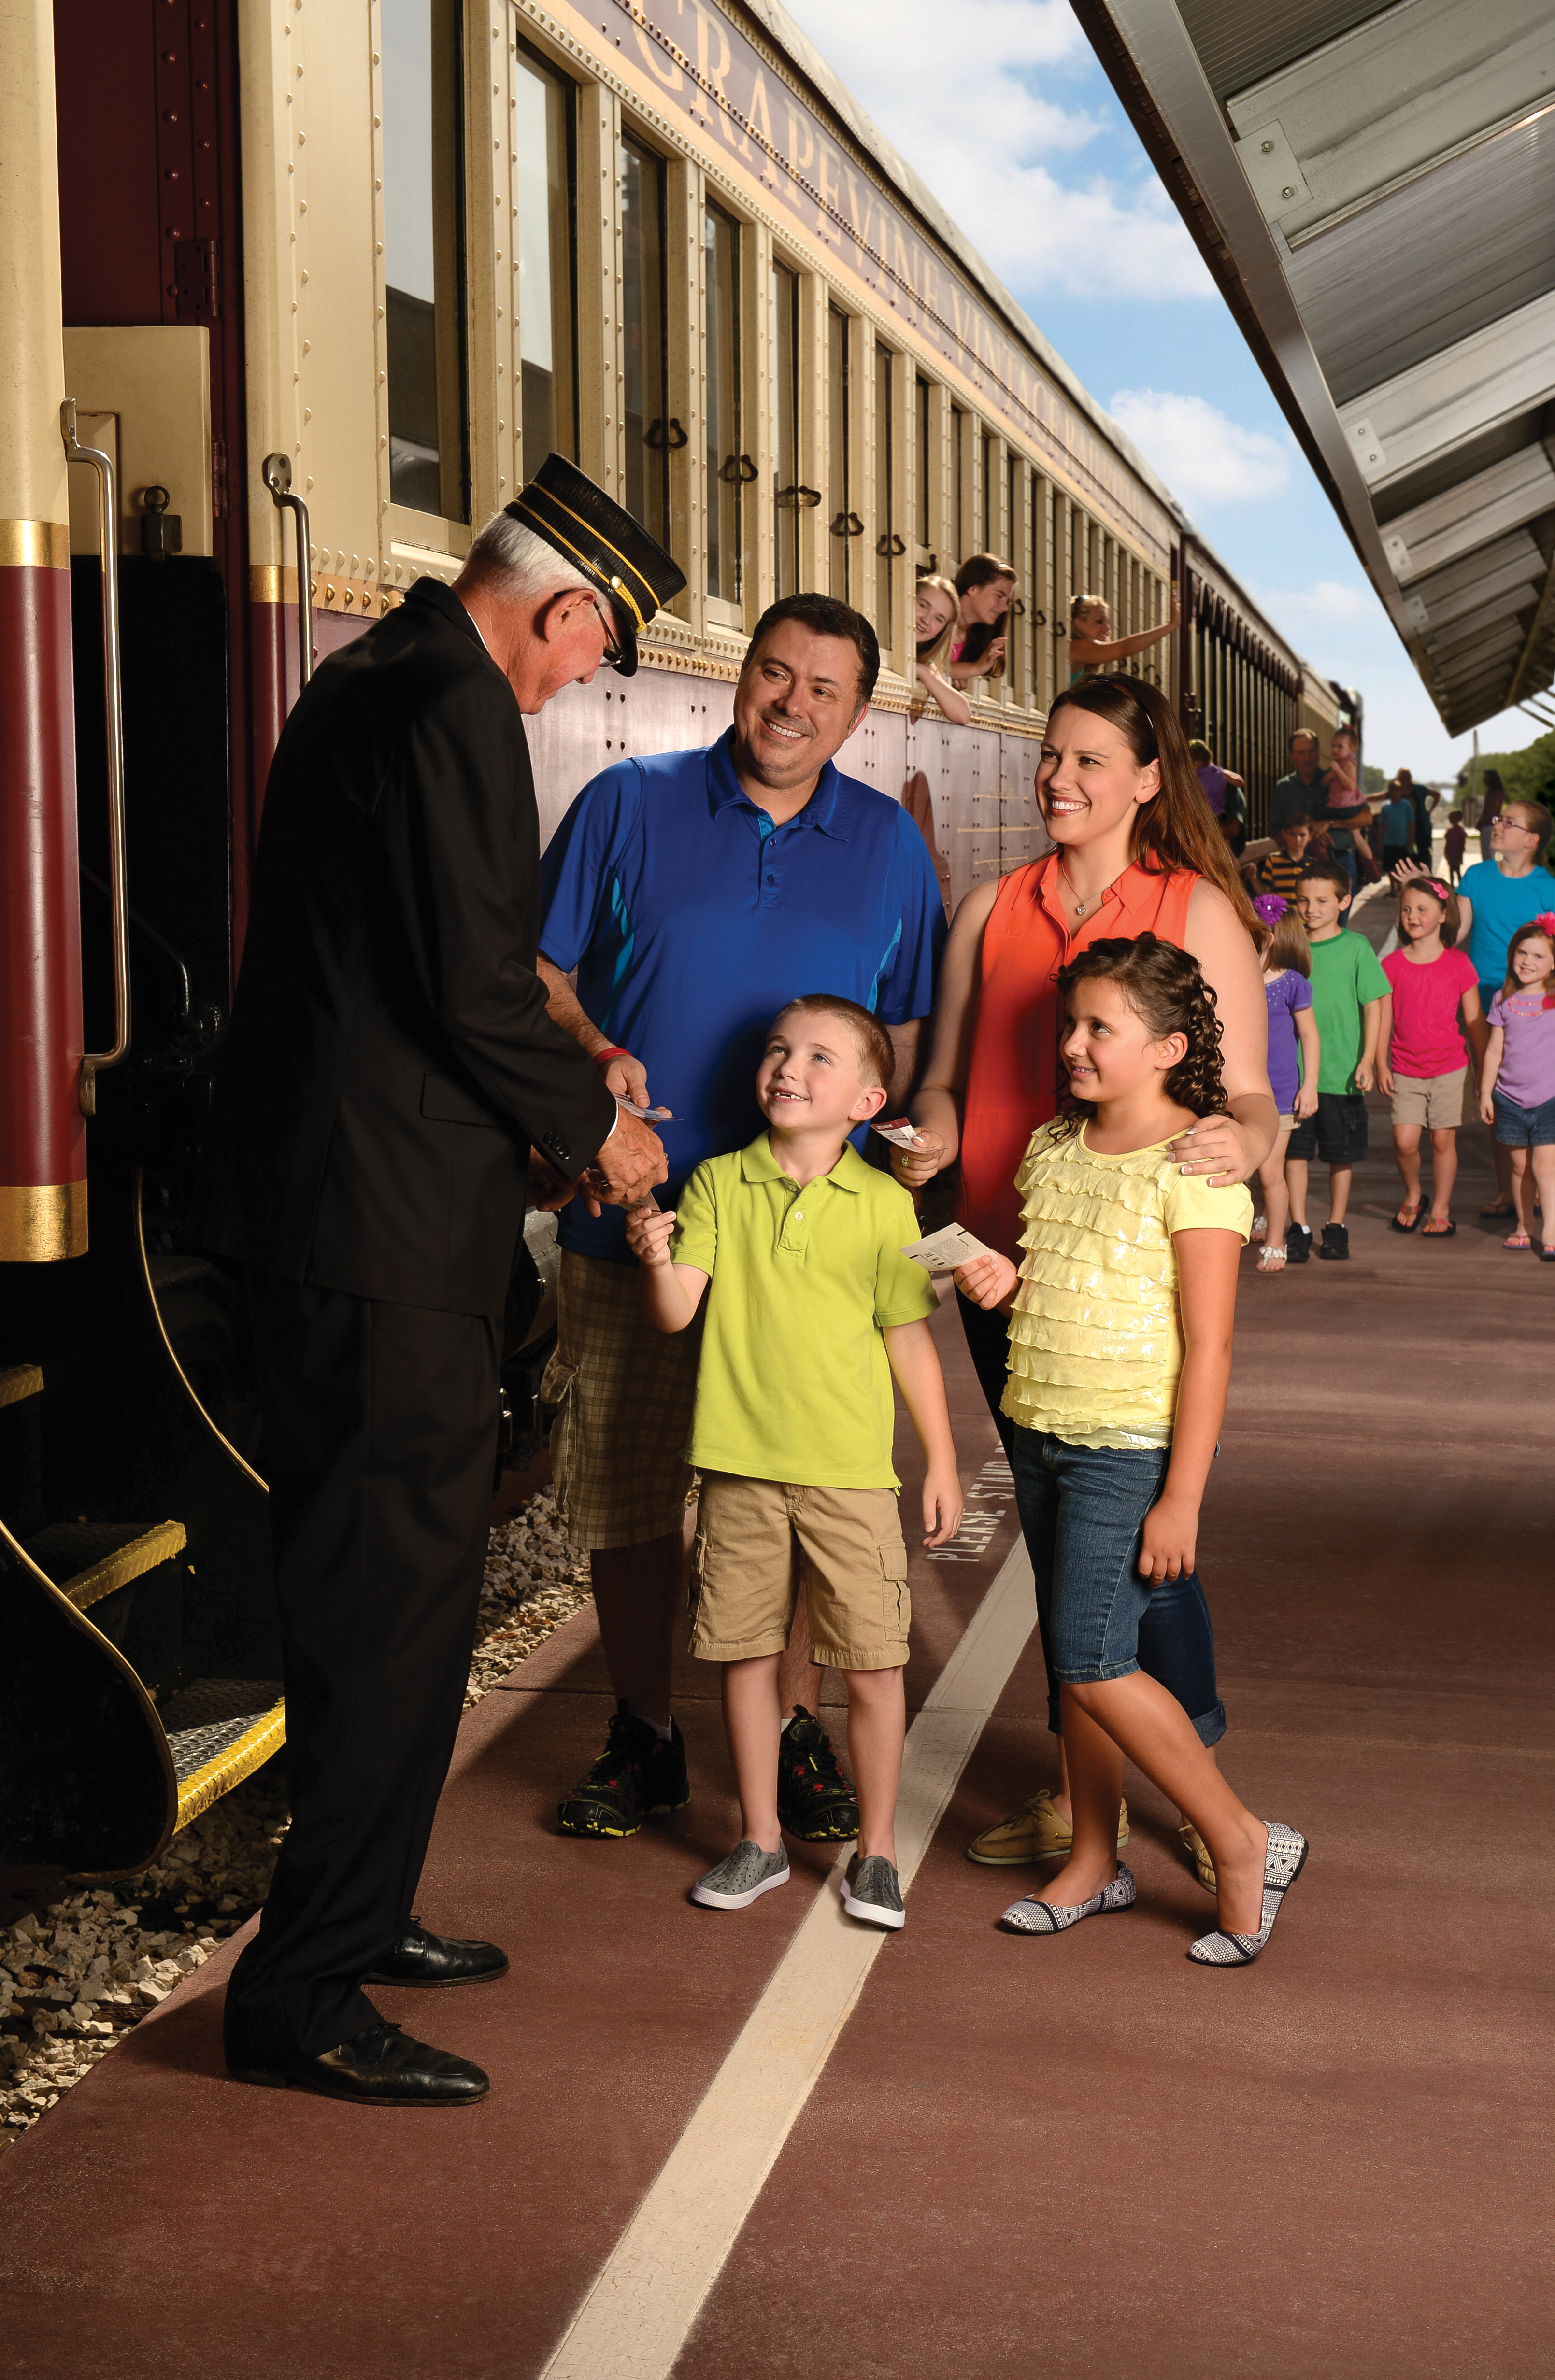 Family at Grapevine Vintage Railroad